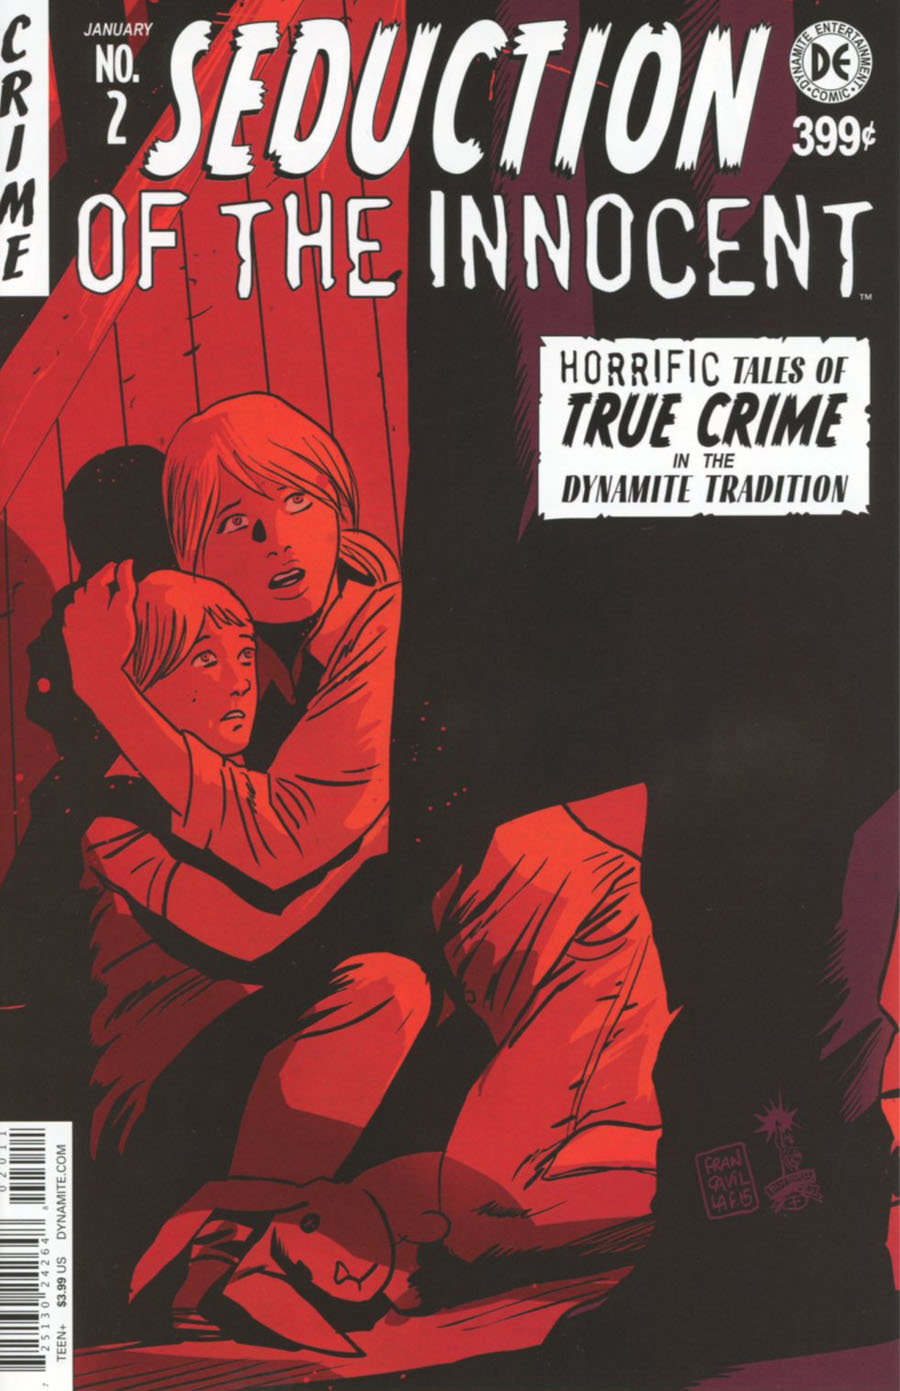 Seduction Of The Innocent (Dynamite) #2